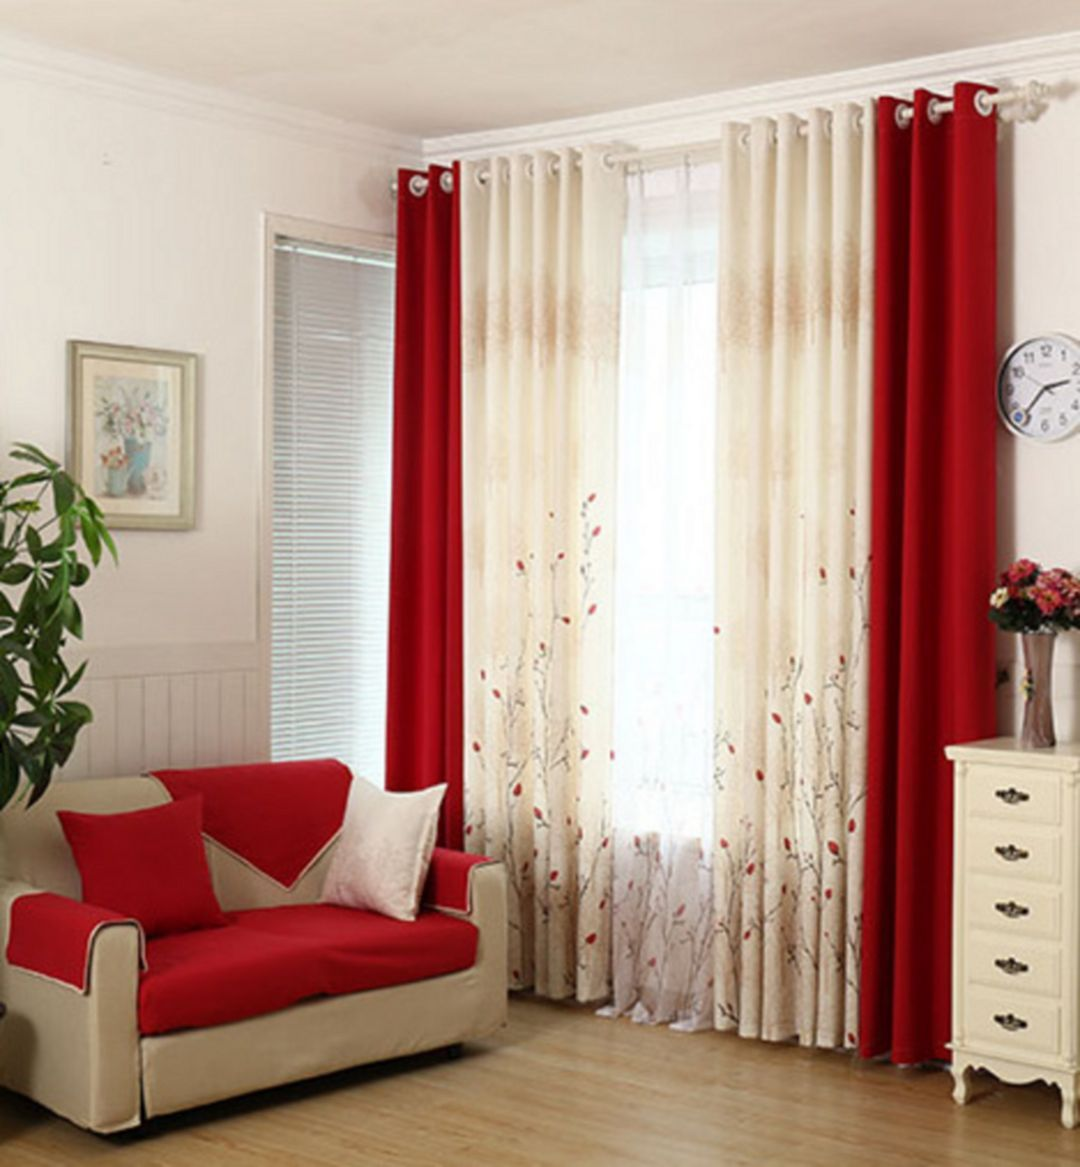 Beautiful Colorful Living Rooms: 90+ Beautiful Colorful Curtain Ideas To Make Amazing